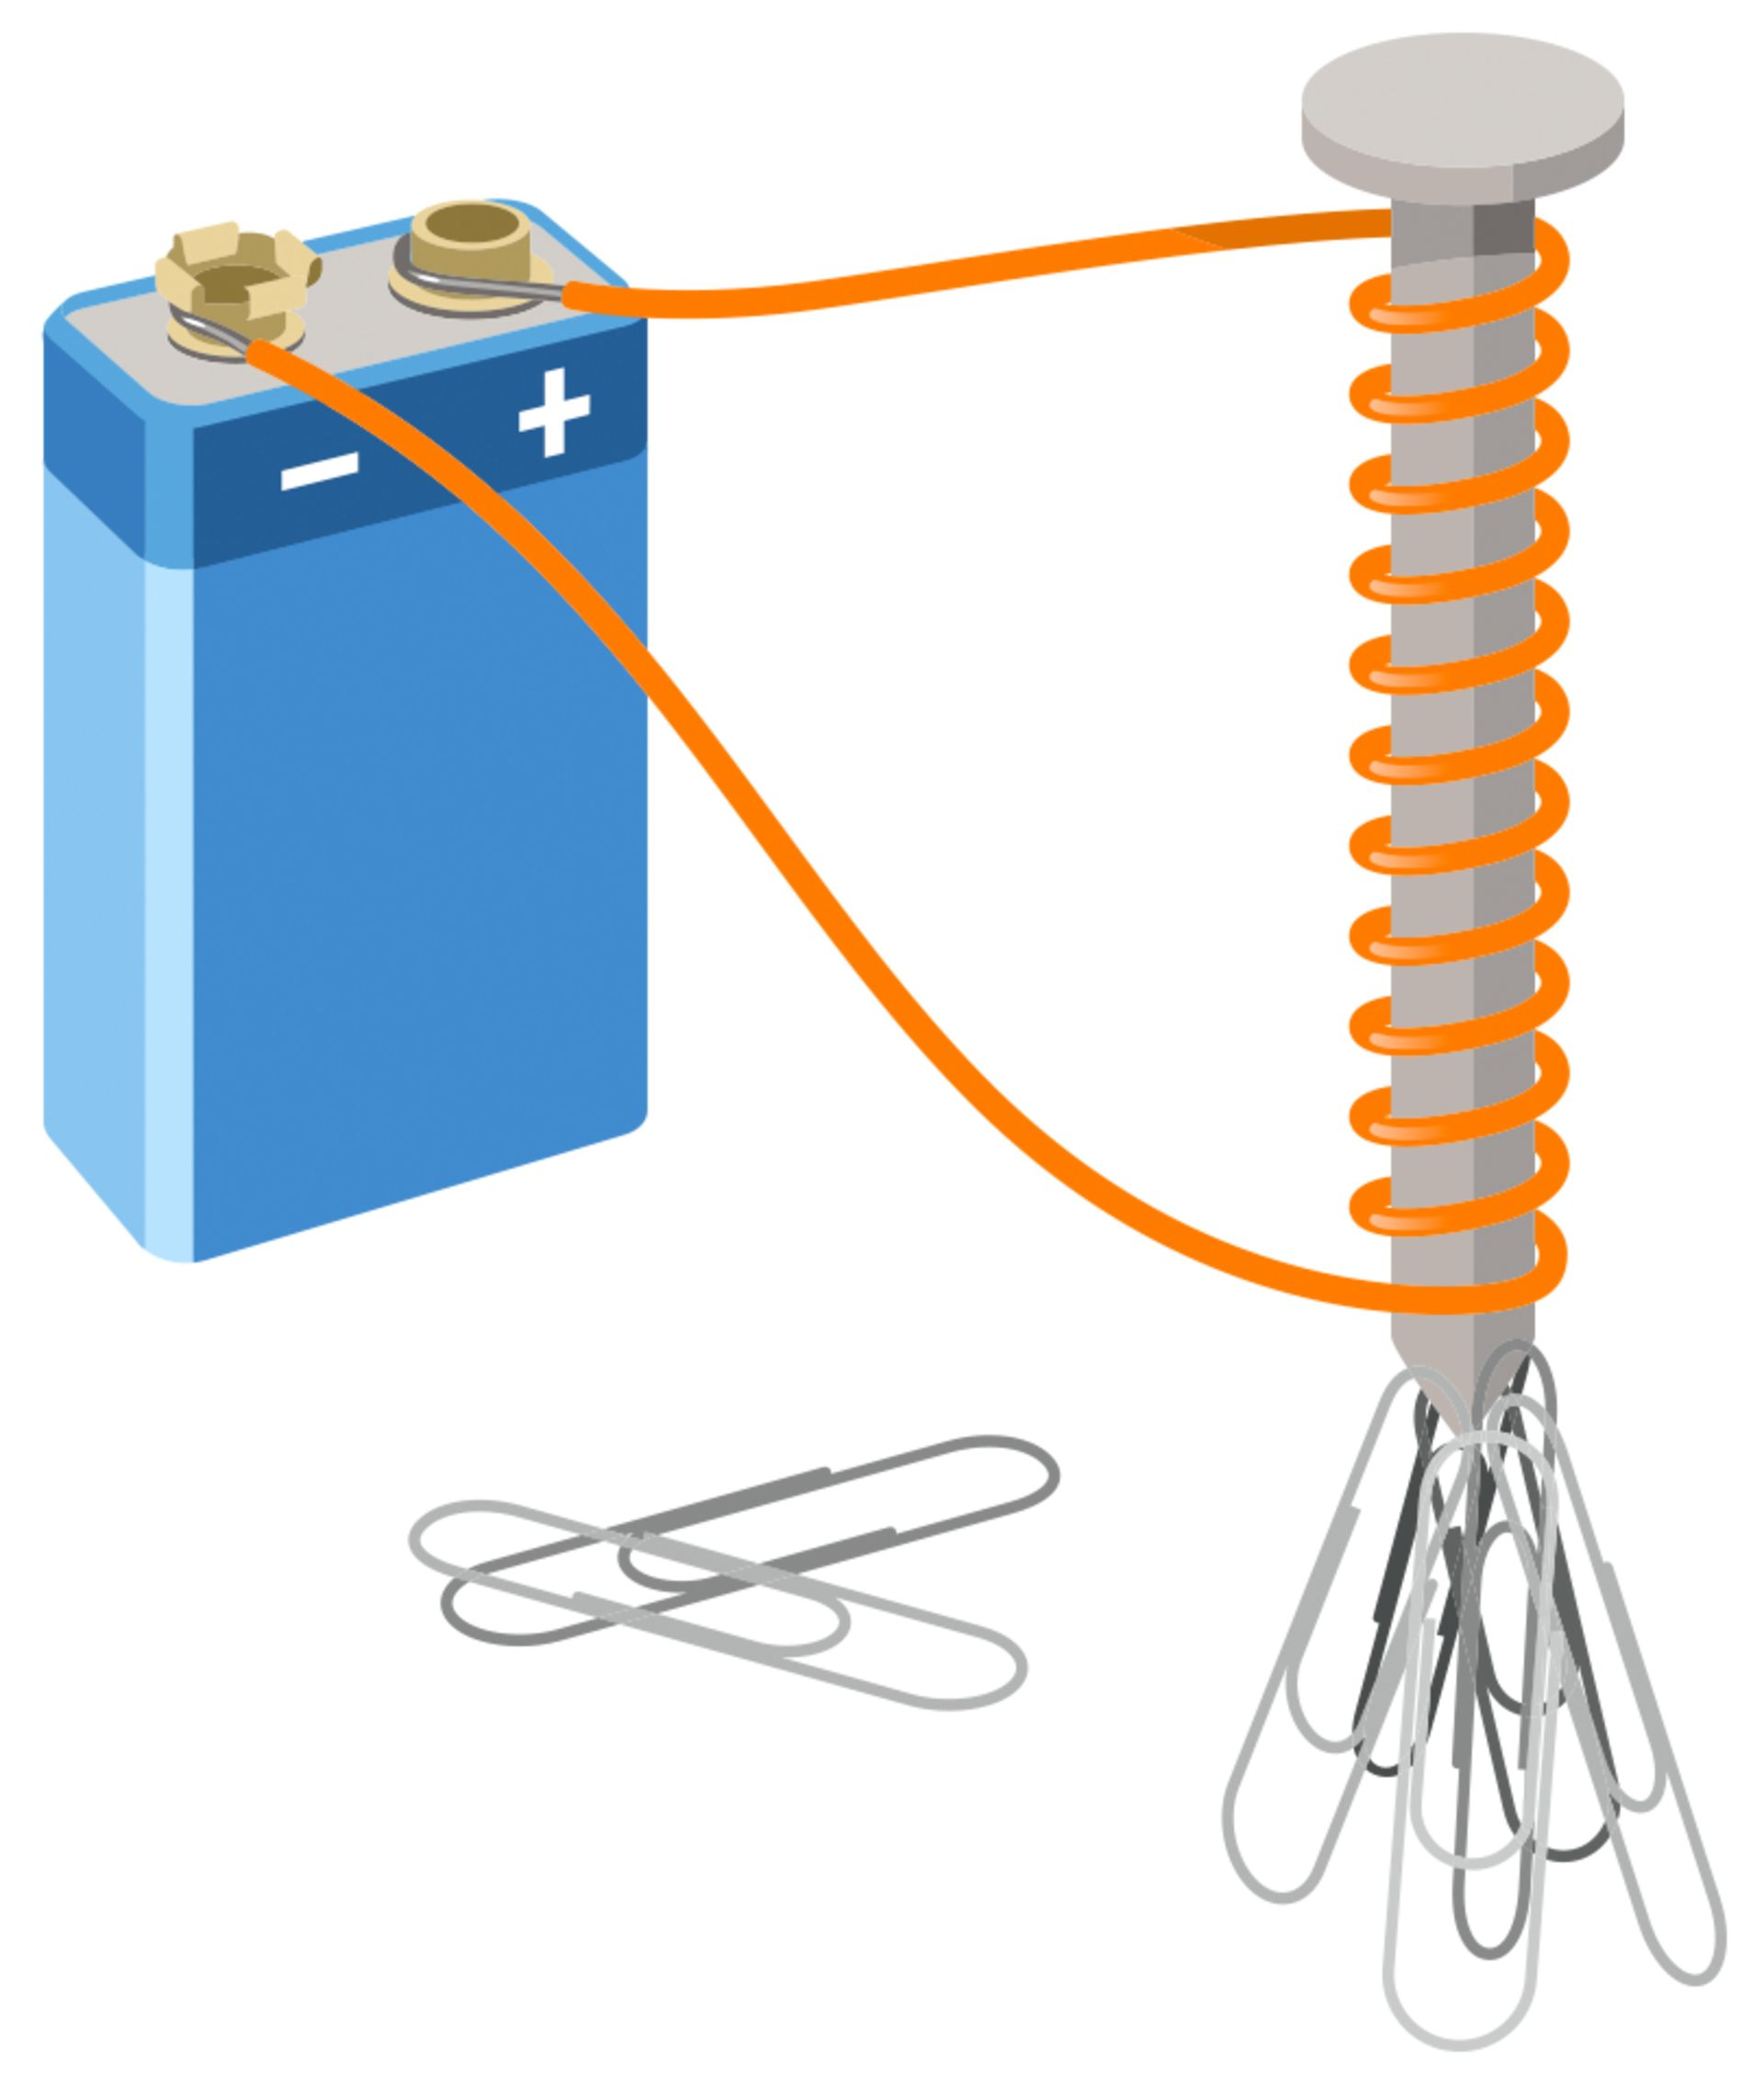 electricity magnetism A basic explanation of what electricity and magnetism are, including details about  how static electricity, current electricity, permanent magnets, magnetic fields.